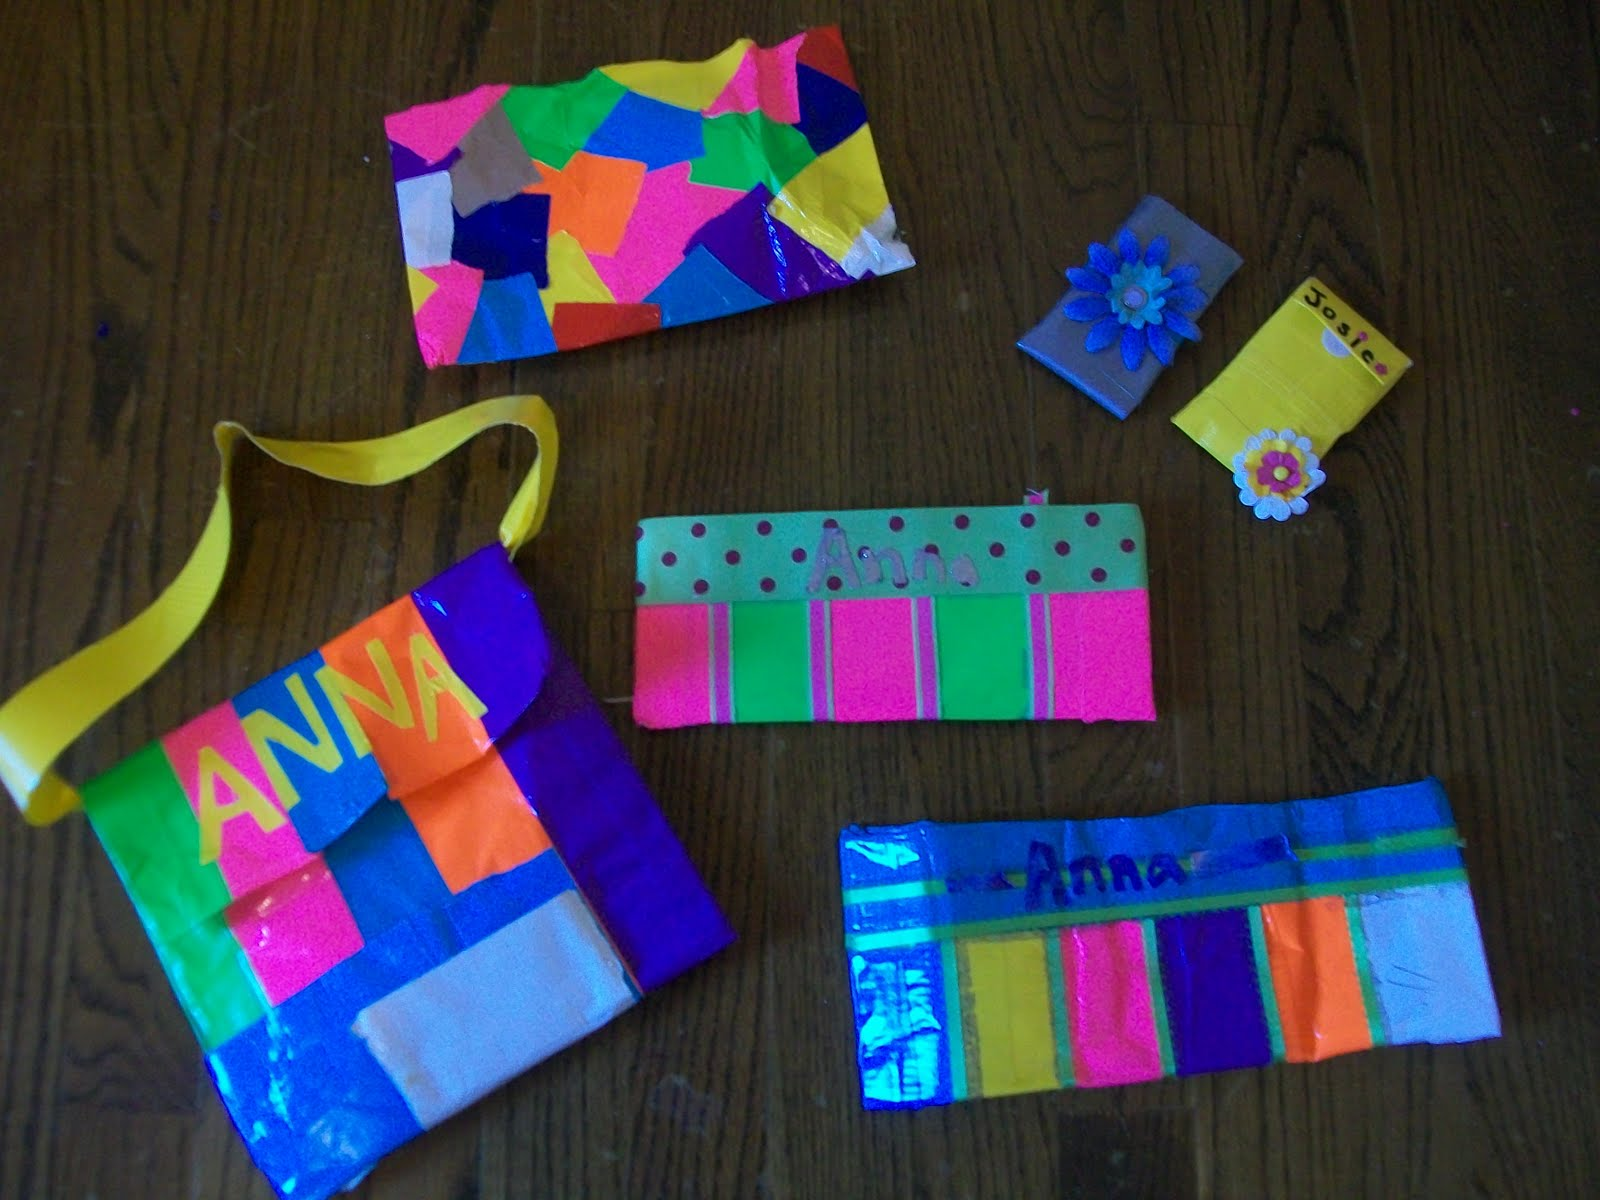 My Duct Tape Creations | I Rock Duct Tape |Duct Tape Creations